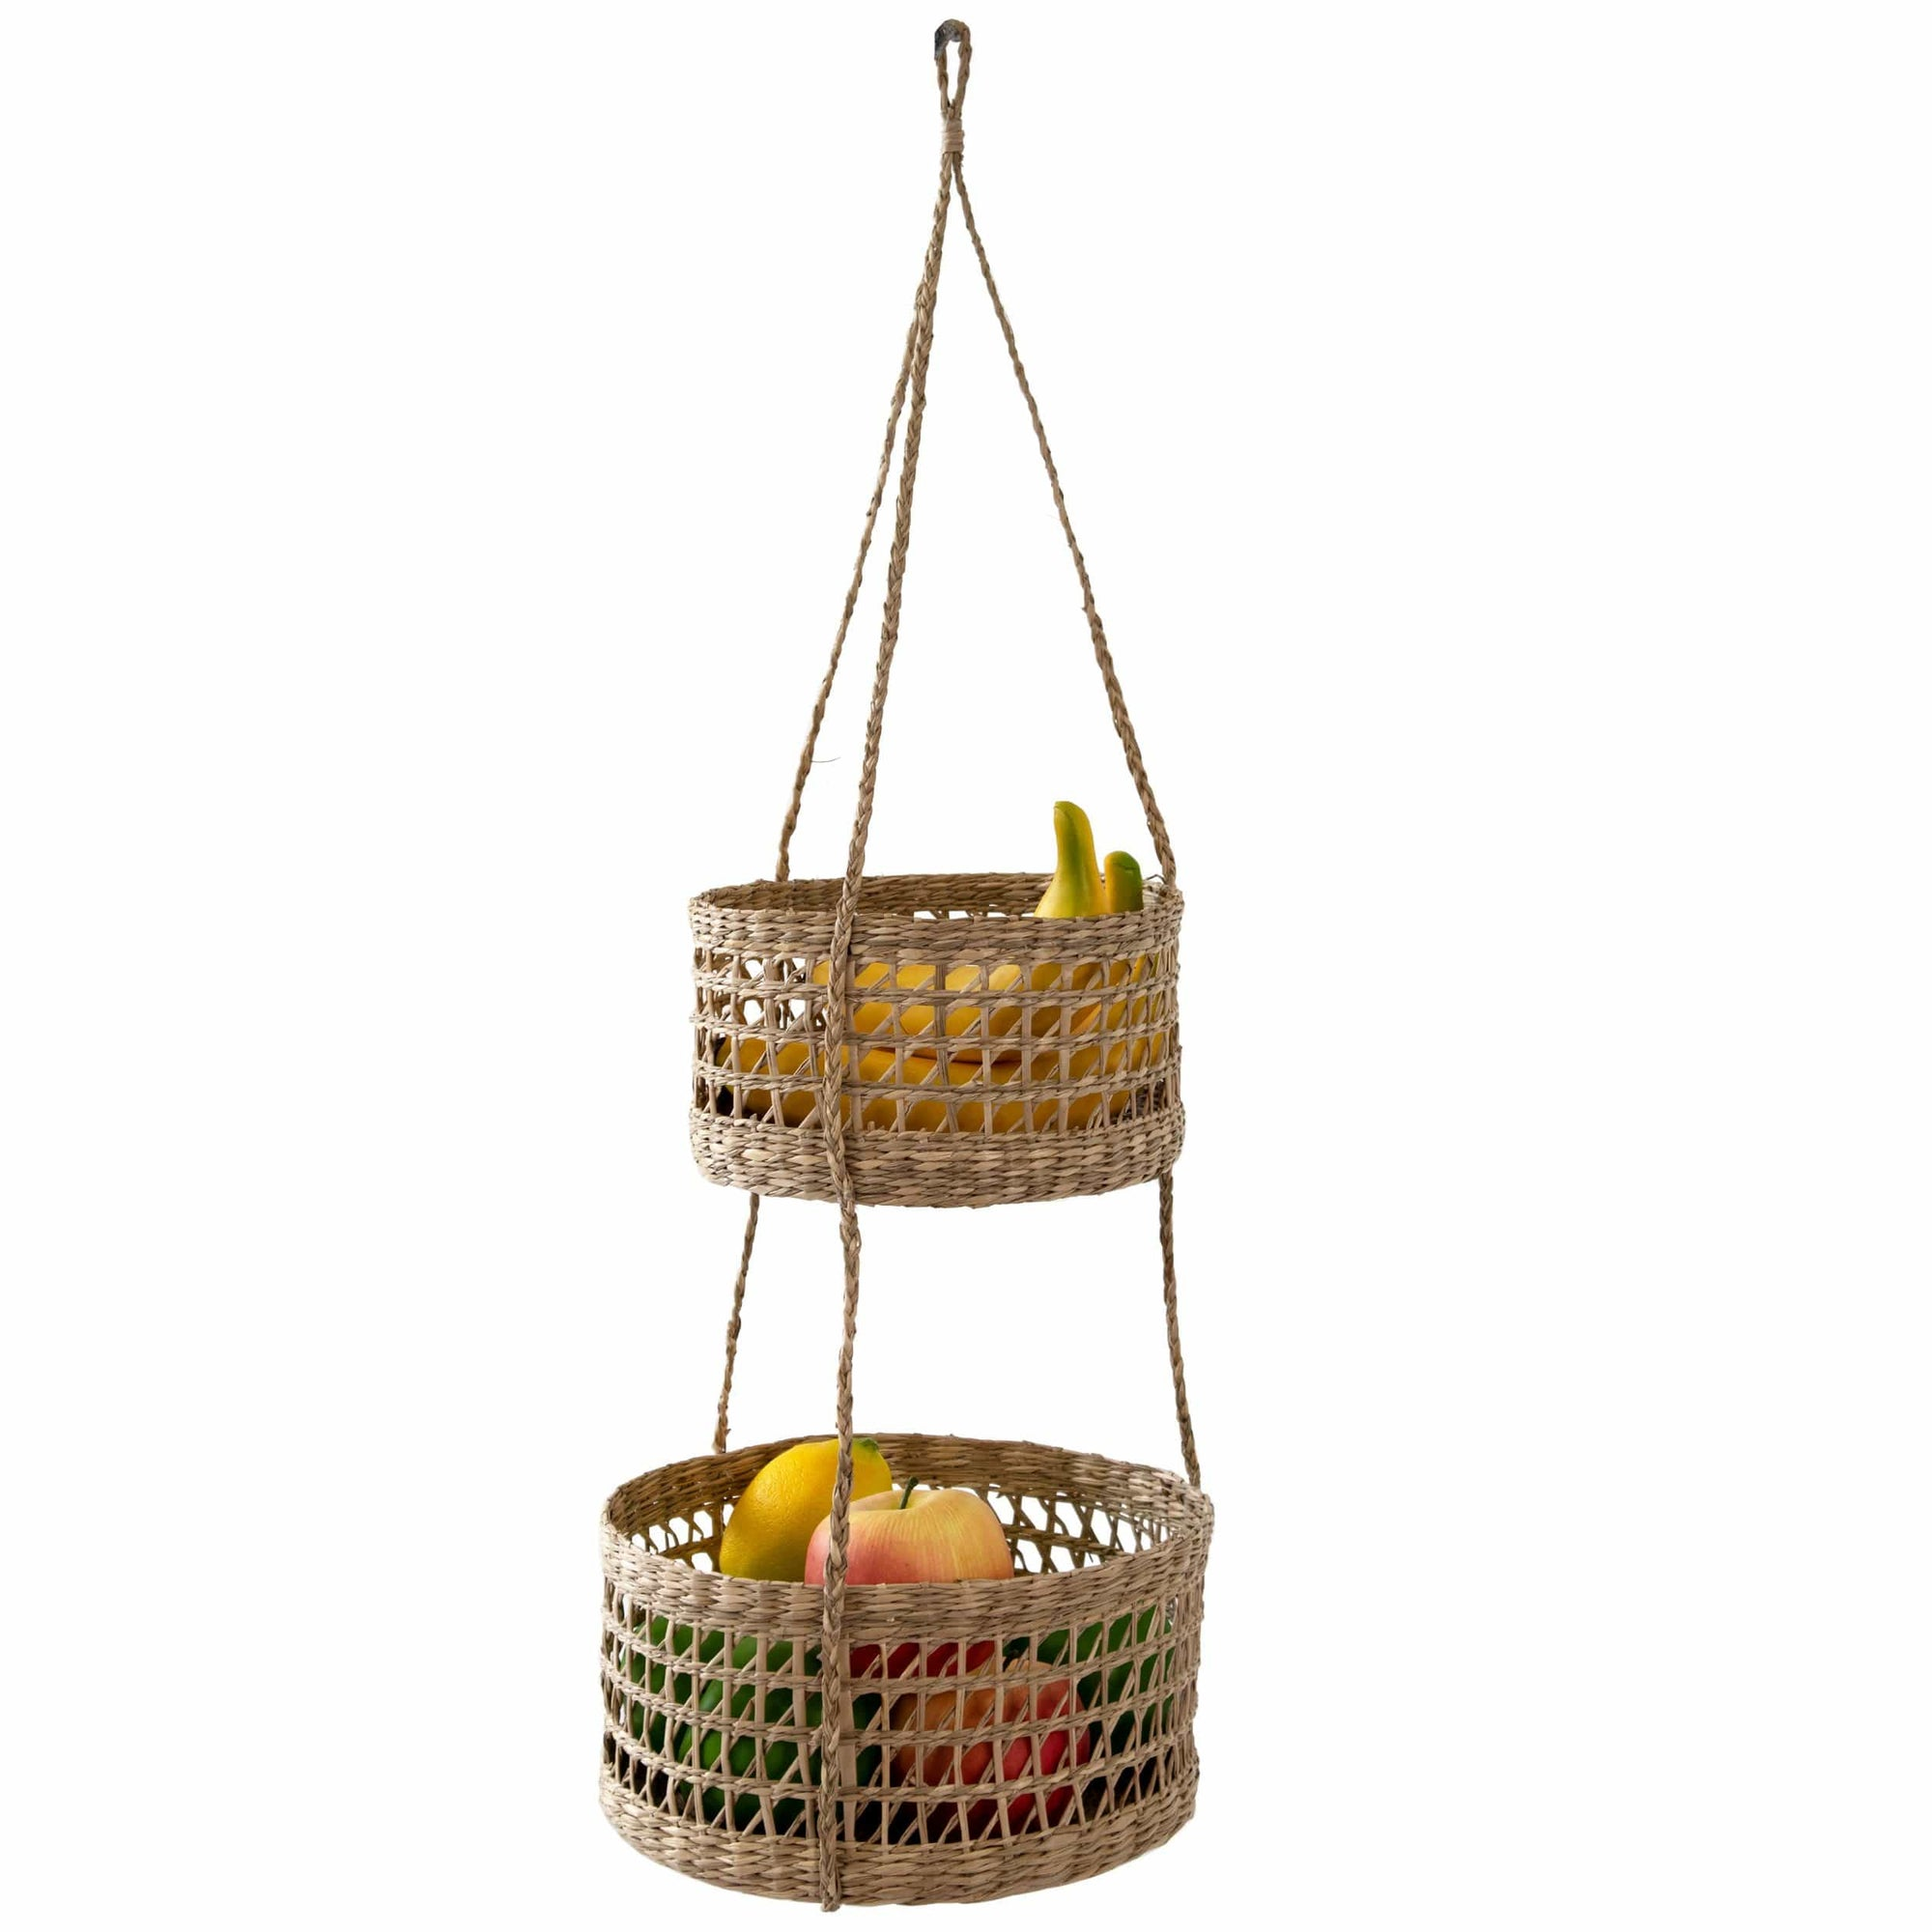 madeterra.uk Wall Basket 2 Tier Round Woven Wall Hanging Baskets For Storage and Plant Pot Holder | Natural Seagrass Willow Wicker Fruit Bread Storage and Wall Basket Hanging Planters Flower Pot Container for Home Garden